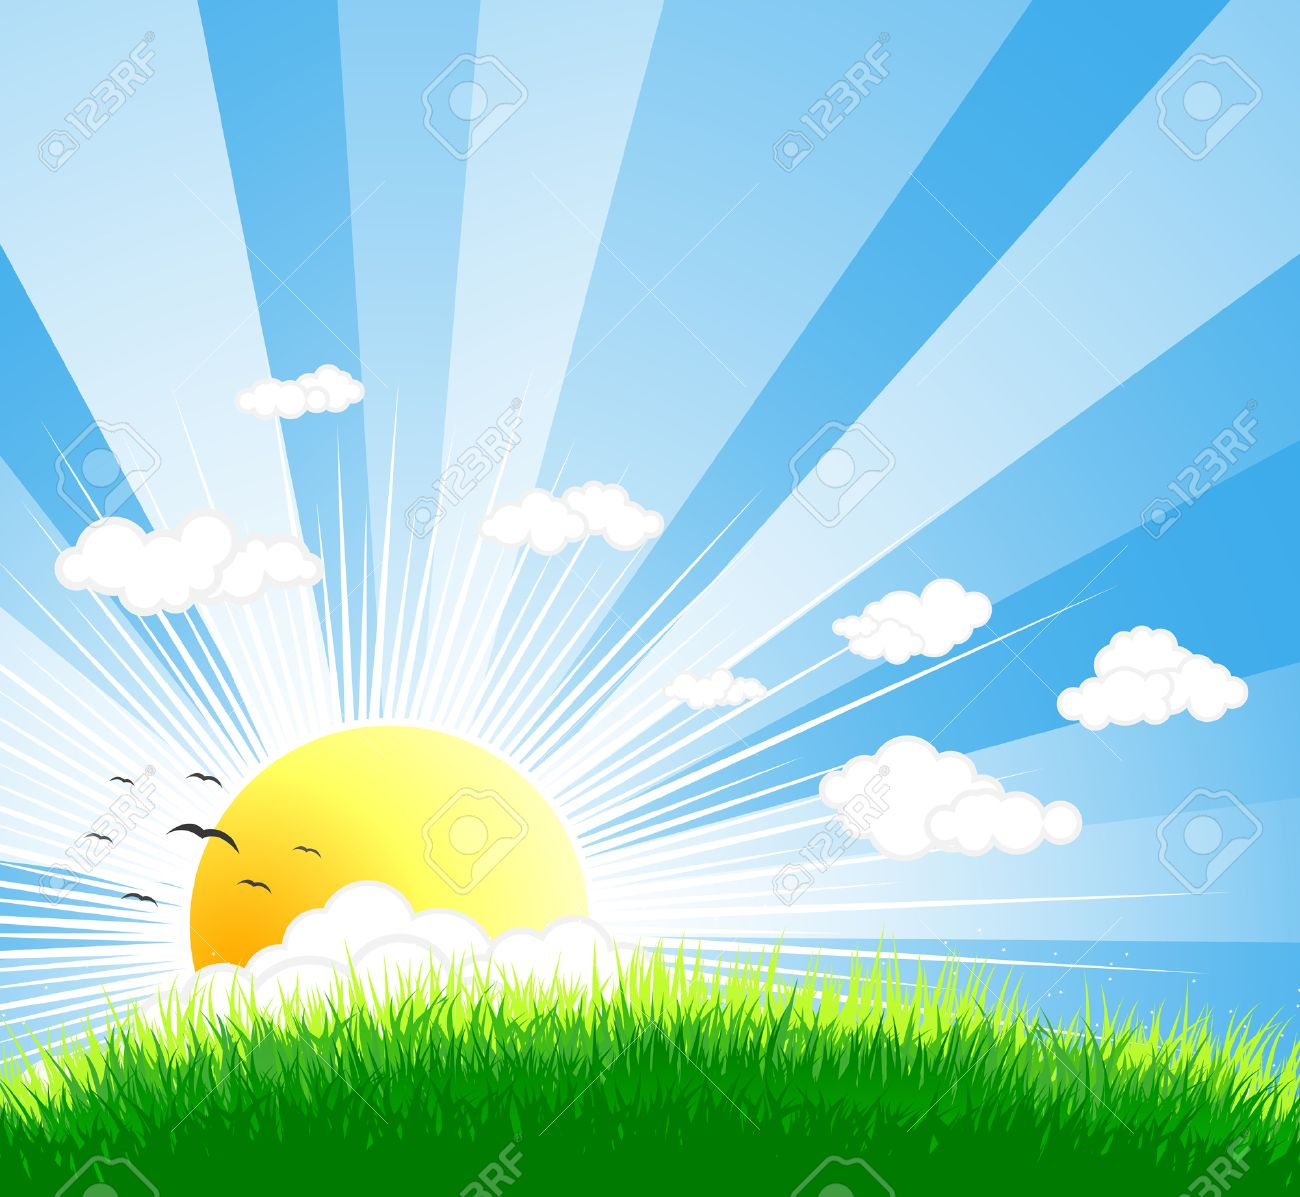 Vector illustration of an idyllic sunny nature background with a blue gradient stripes sky, birds, green grass layers of grass and sky. - 3373276